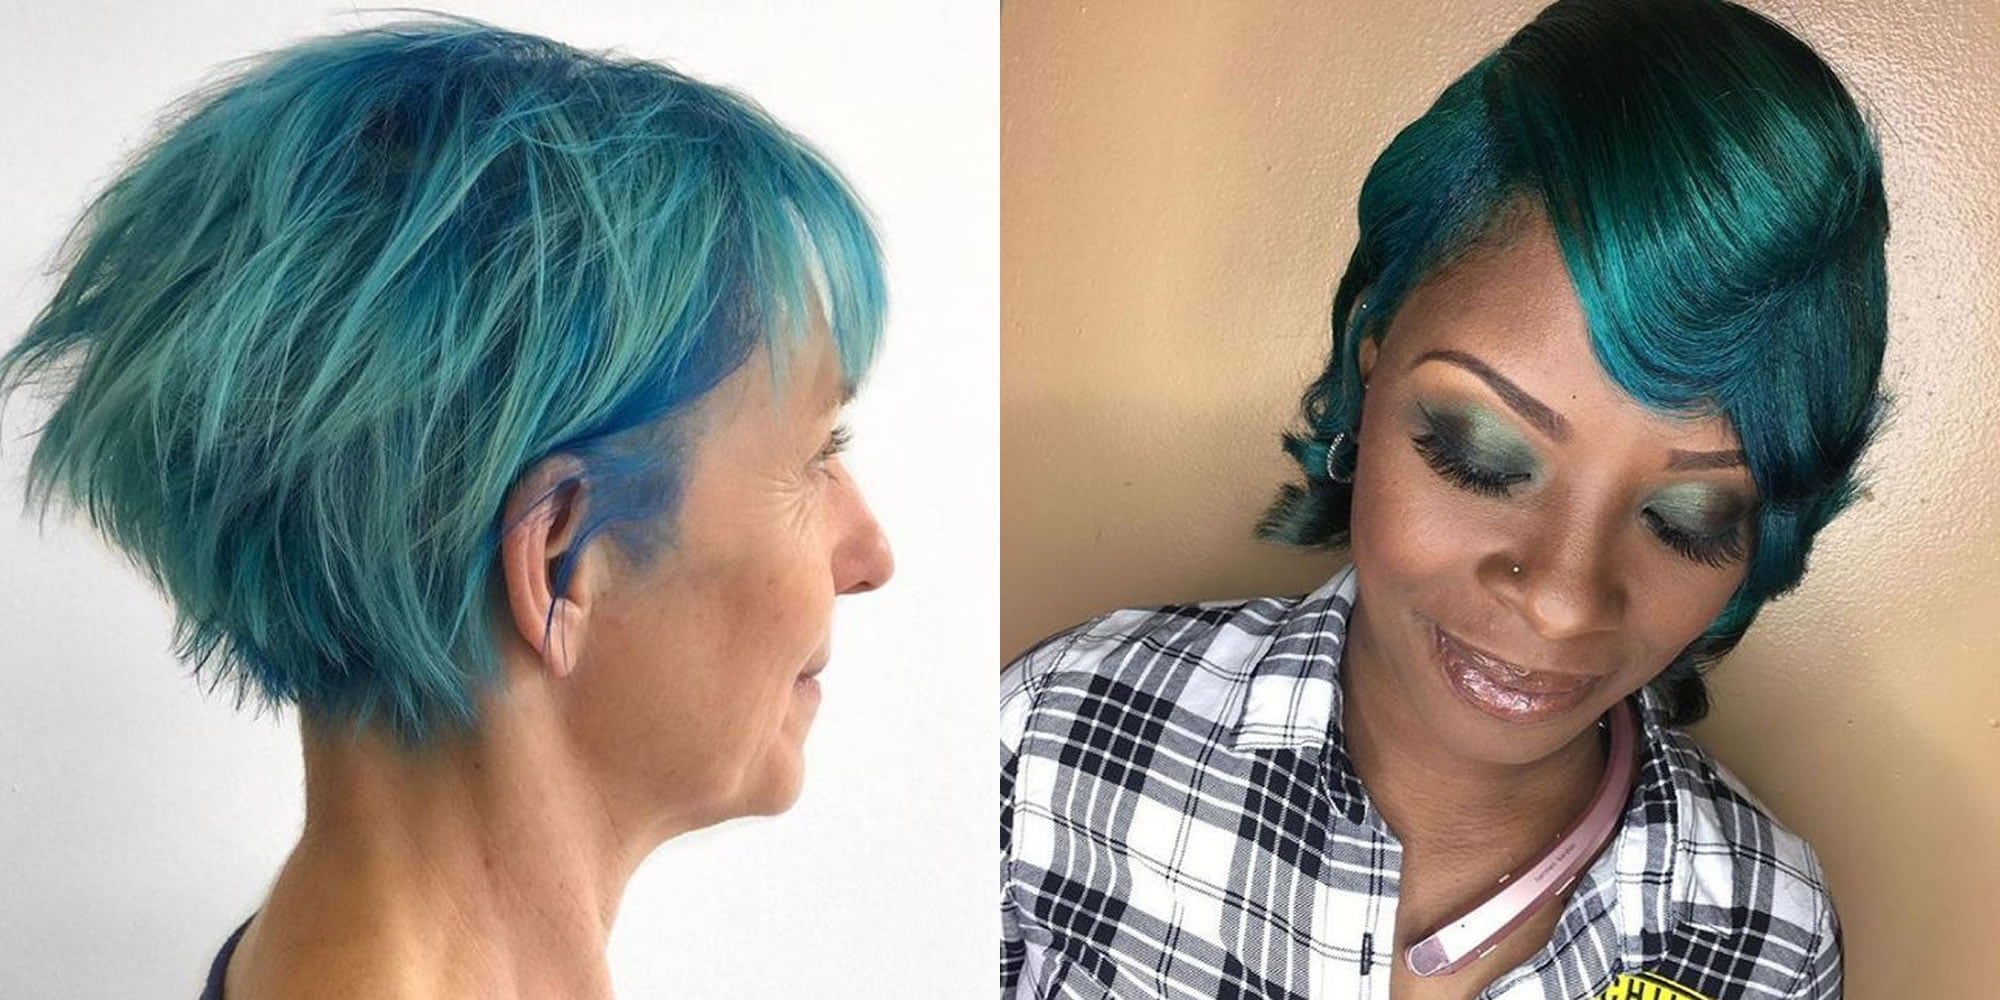 Green Highlights Short Hair Style For Women 2019 Hair Colors